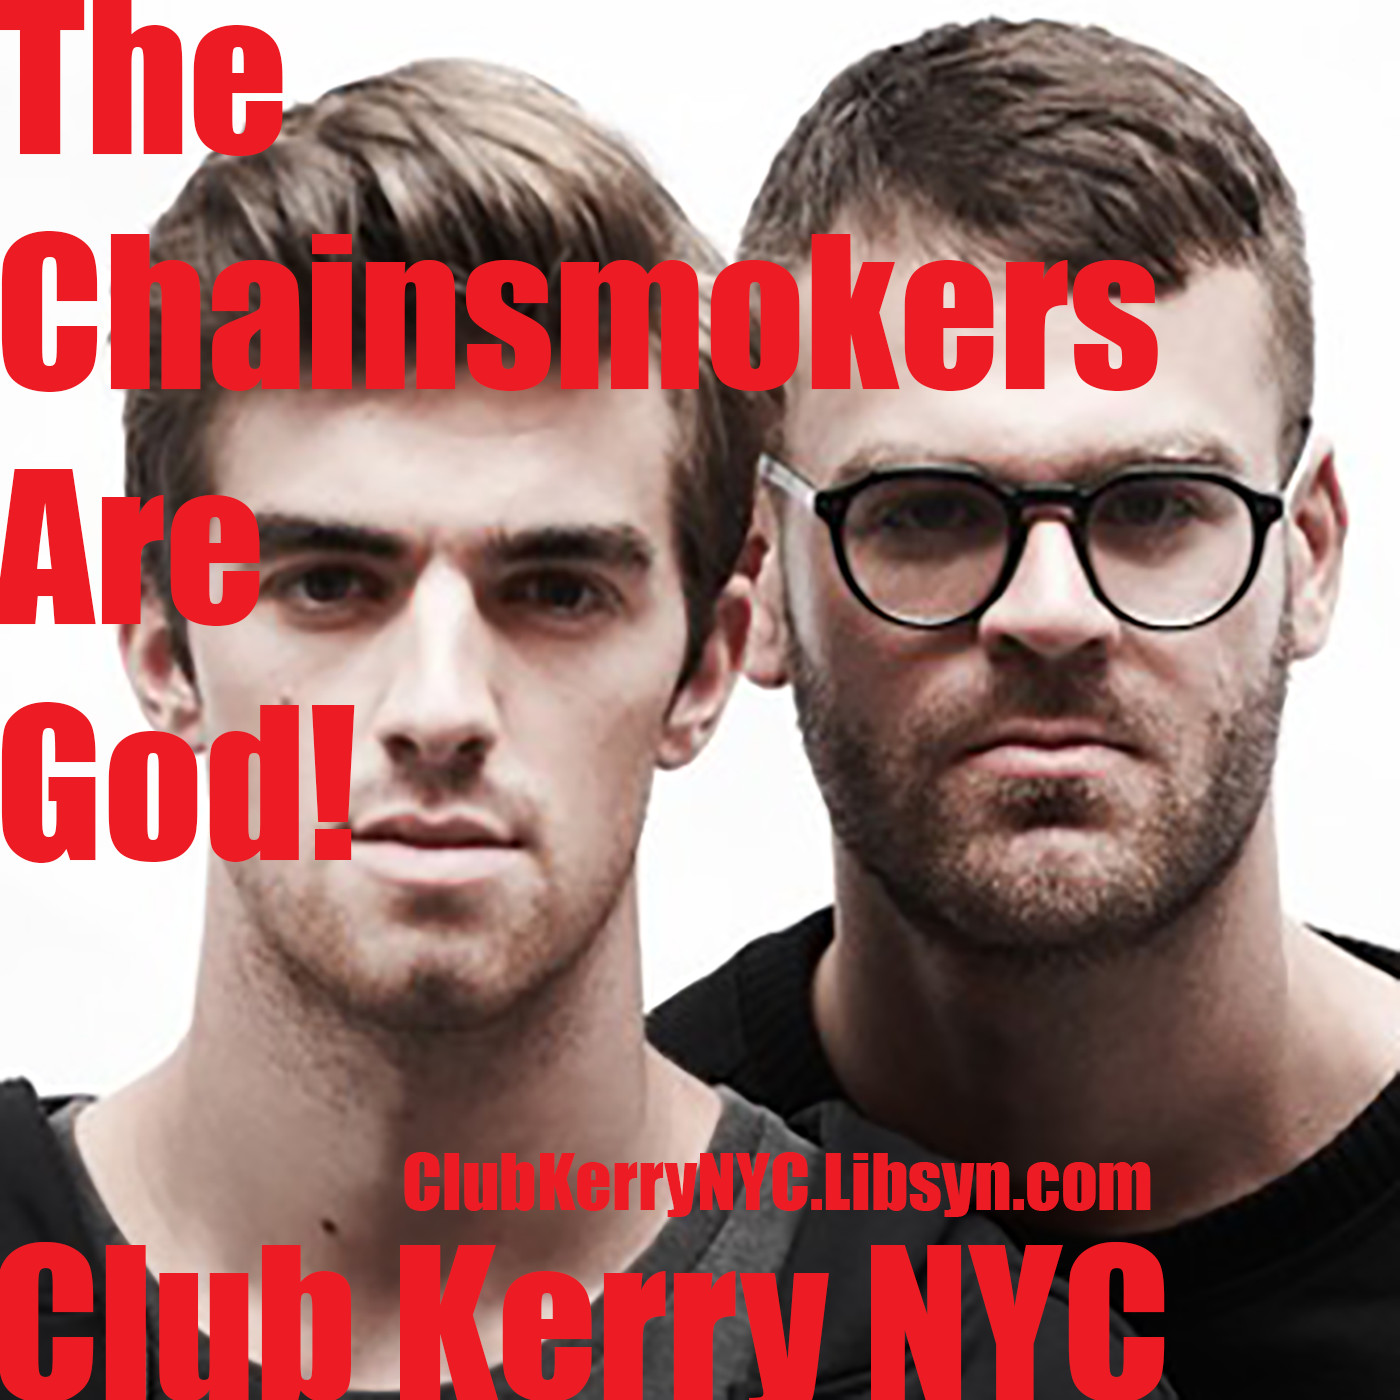 Chainsmoker Are God artwork